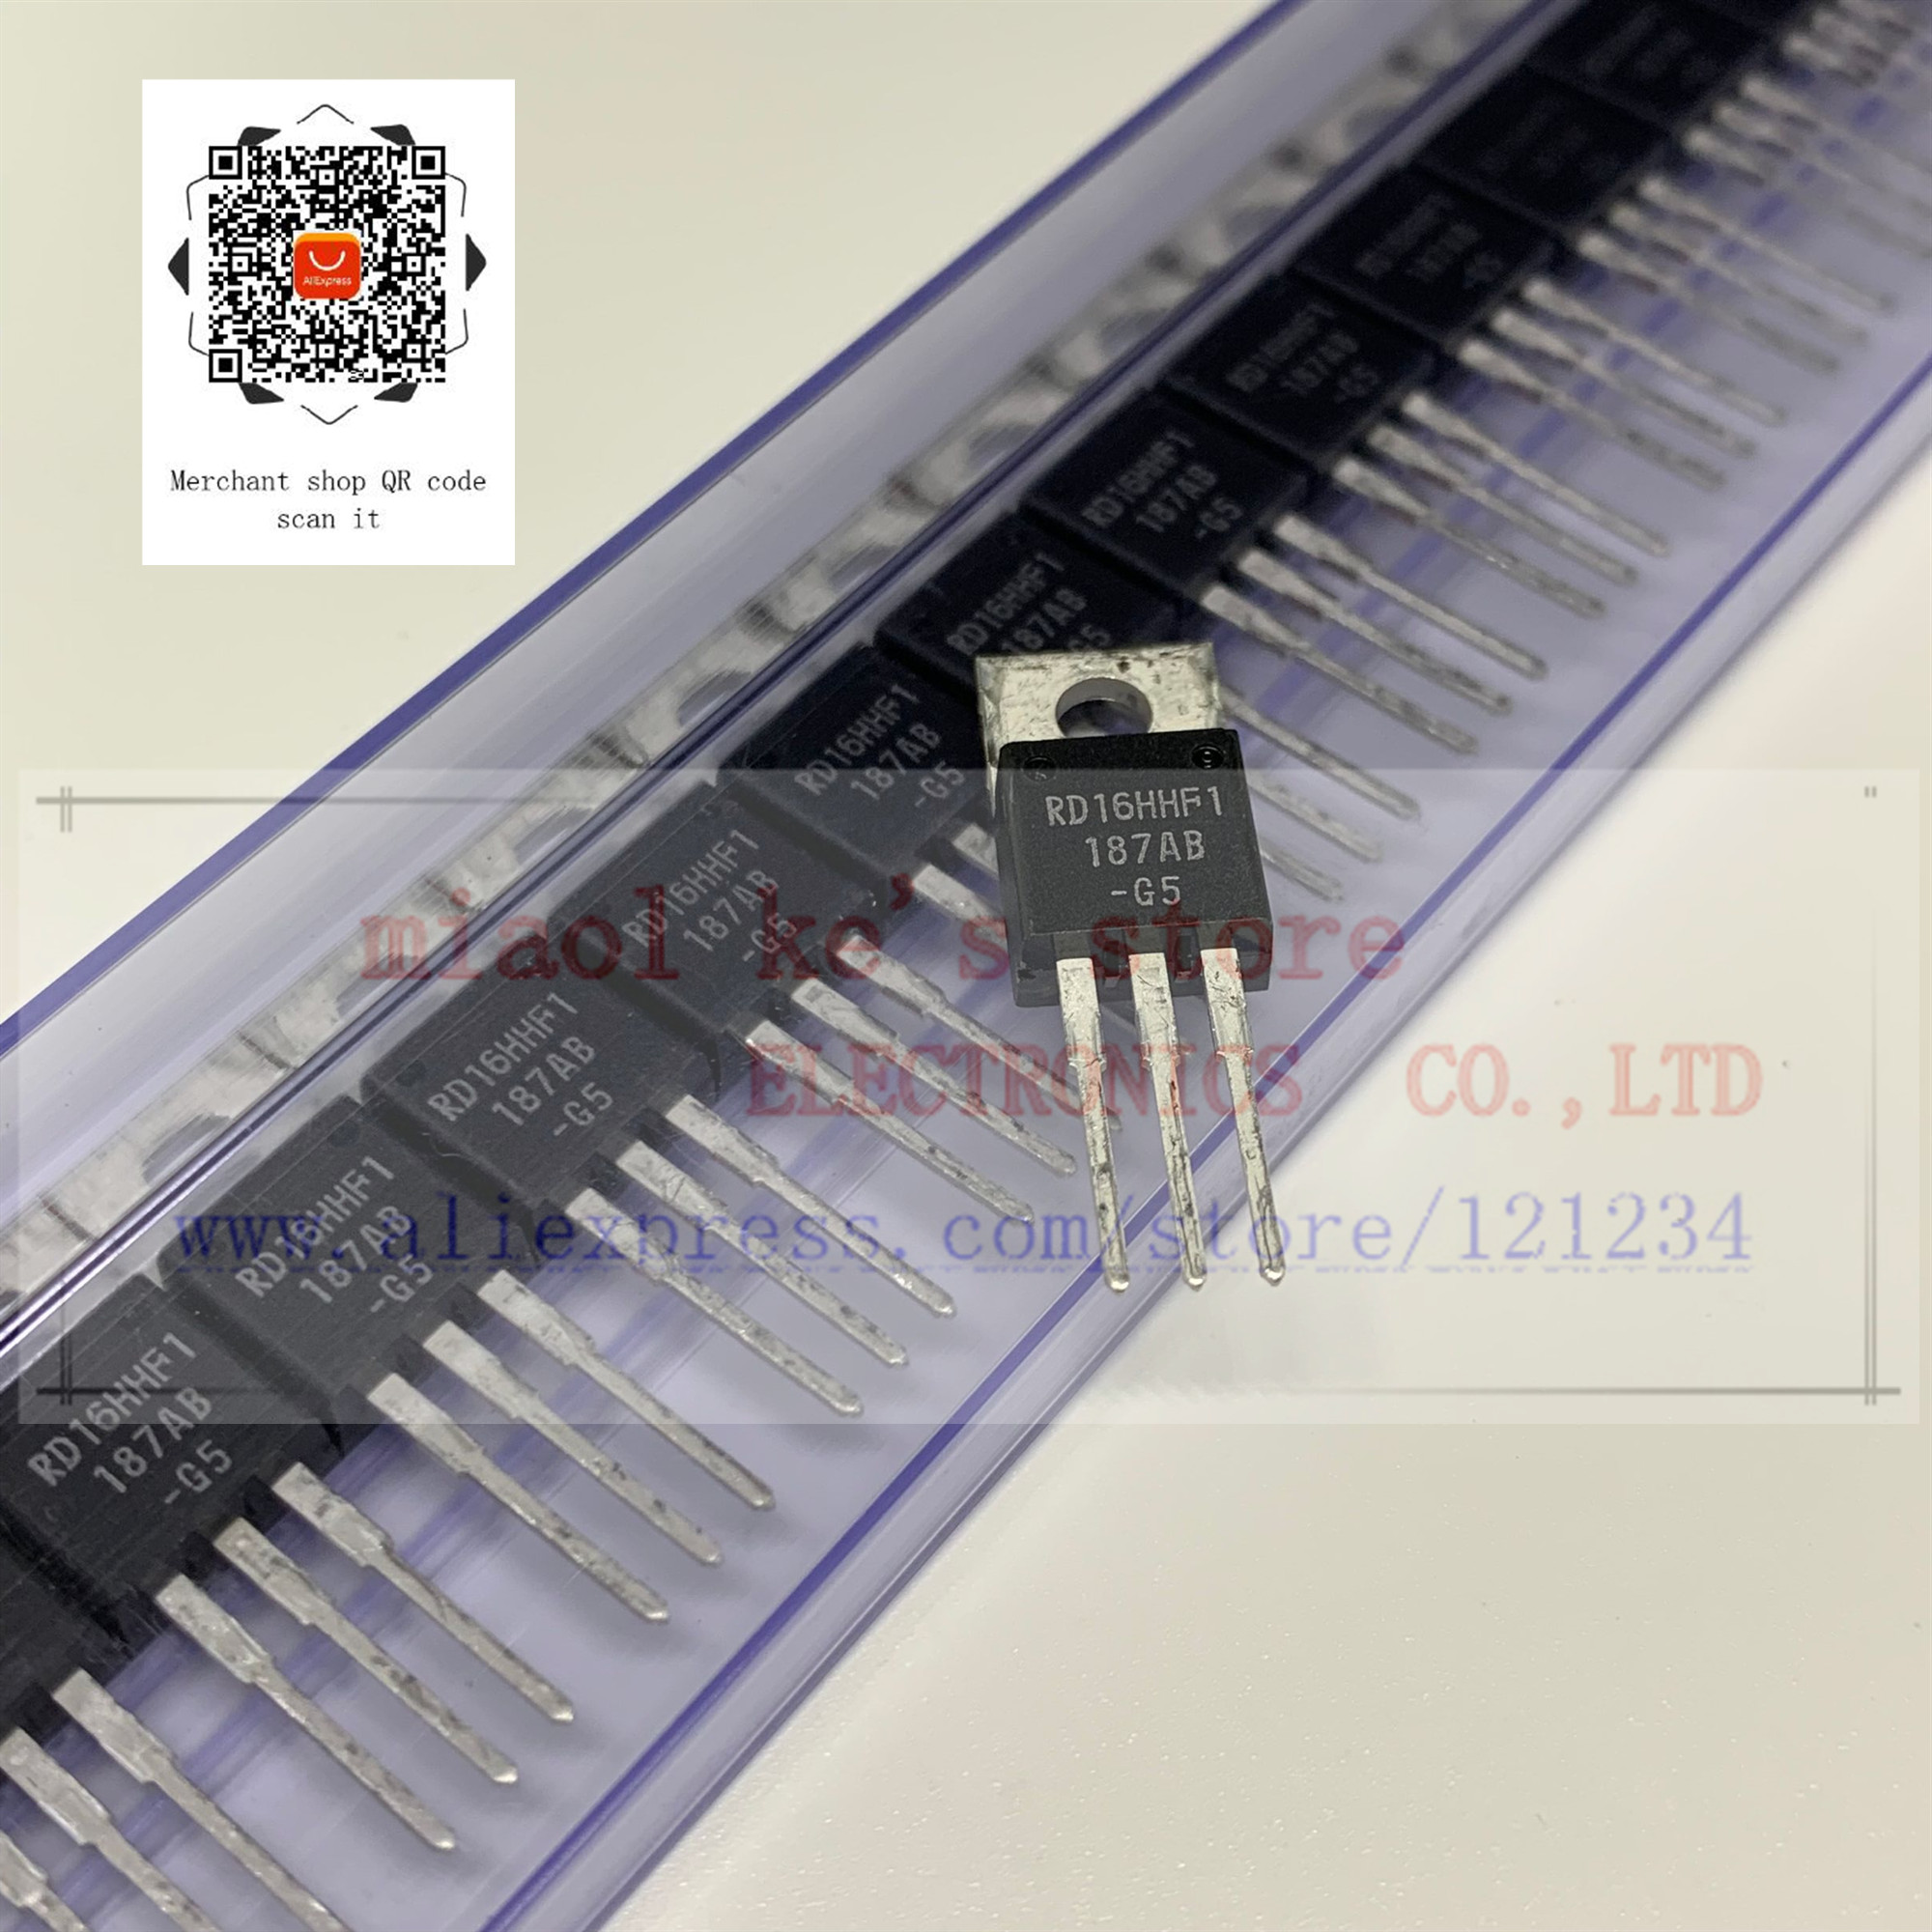 [5pcs/1lots]100%New Original; RD16HHF1 RD16HHF1-501 RD16HHF1-101 [MOSFET Transistor 30MHz,16W]Replaced 2SC3133 2SC1945 2SC1969